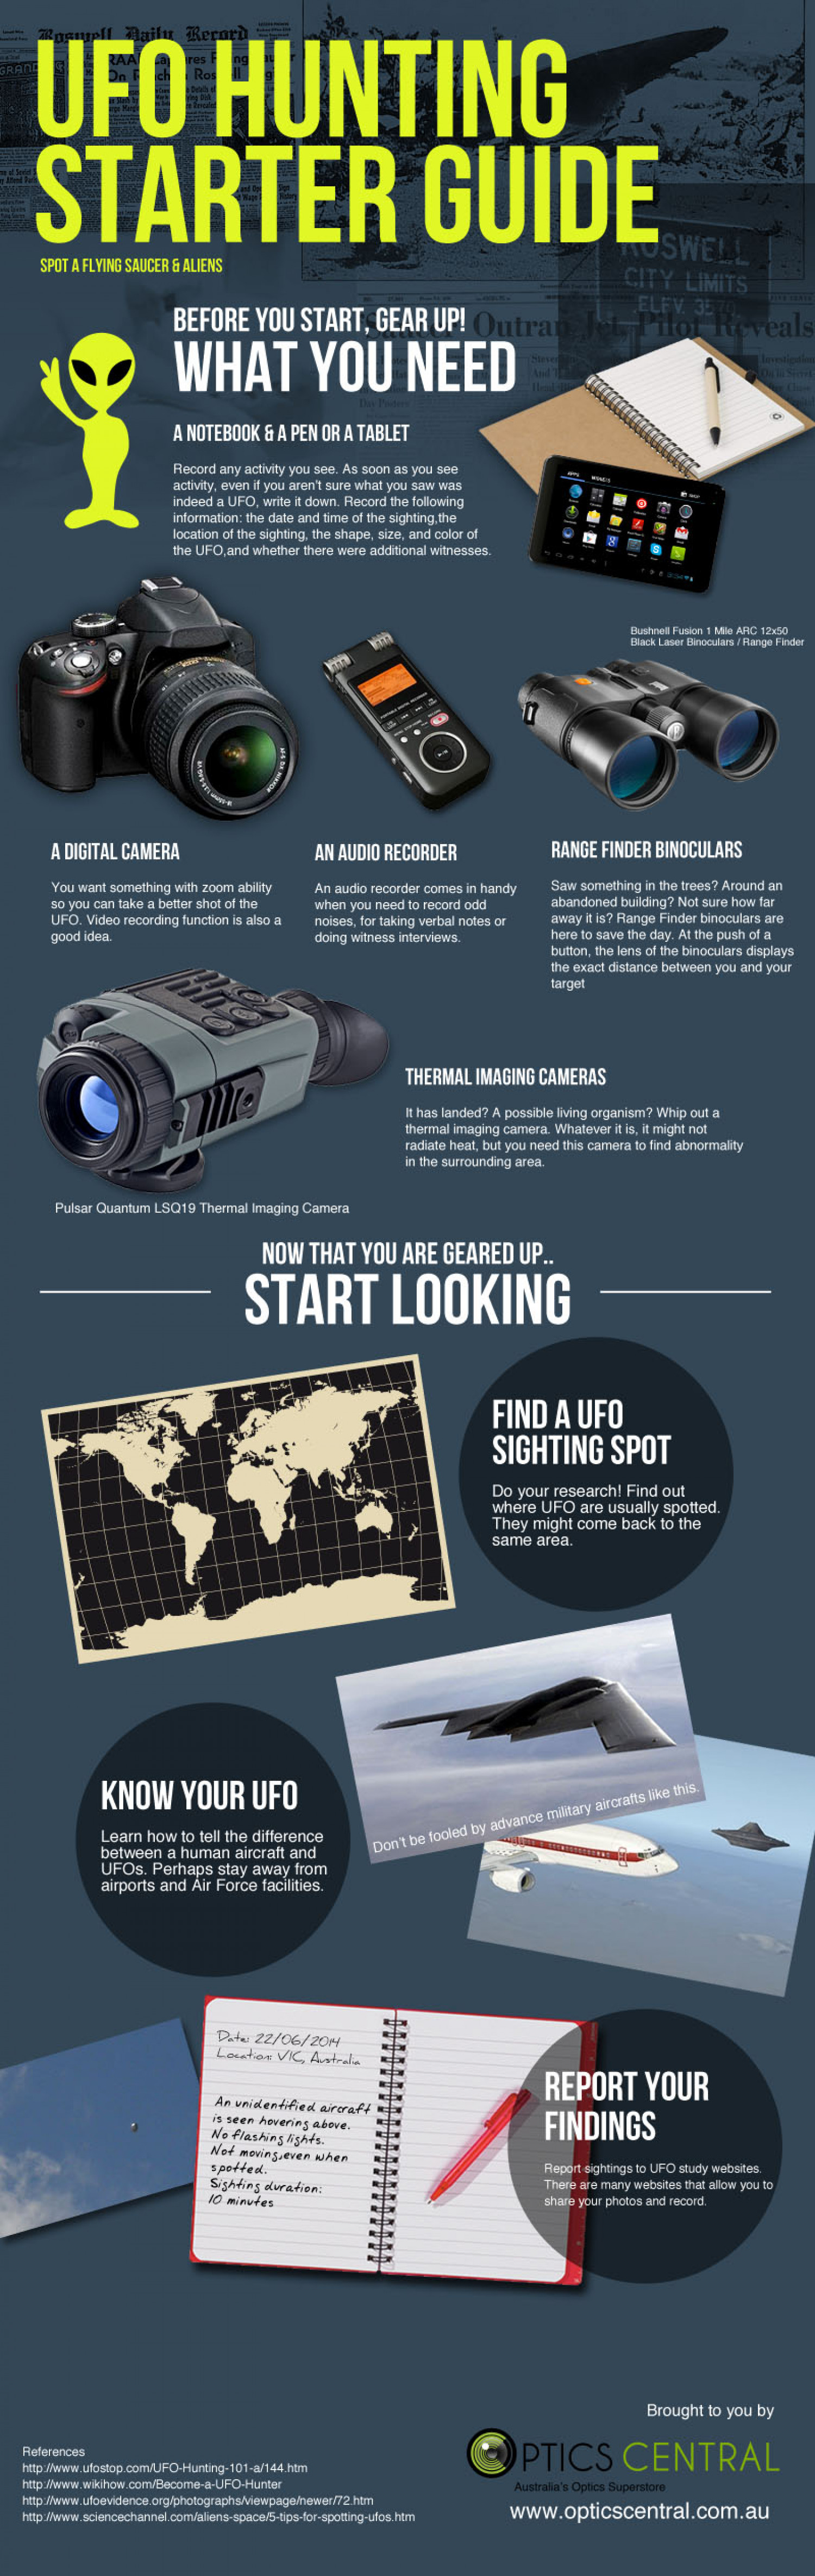 UFO Hunting Starter Guide Infographic